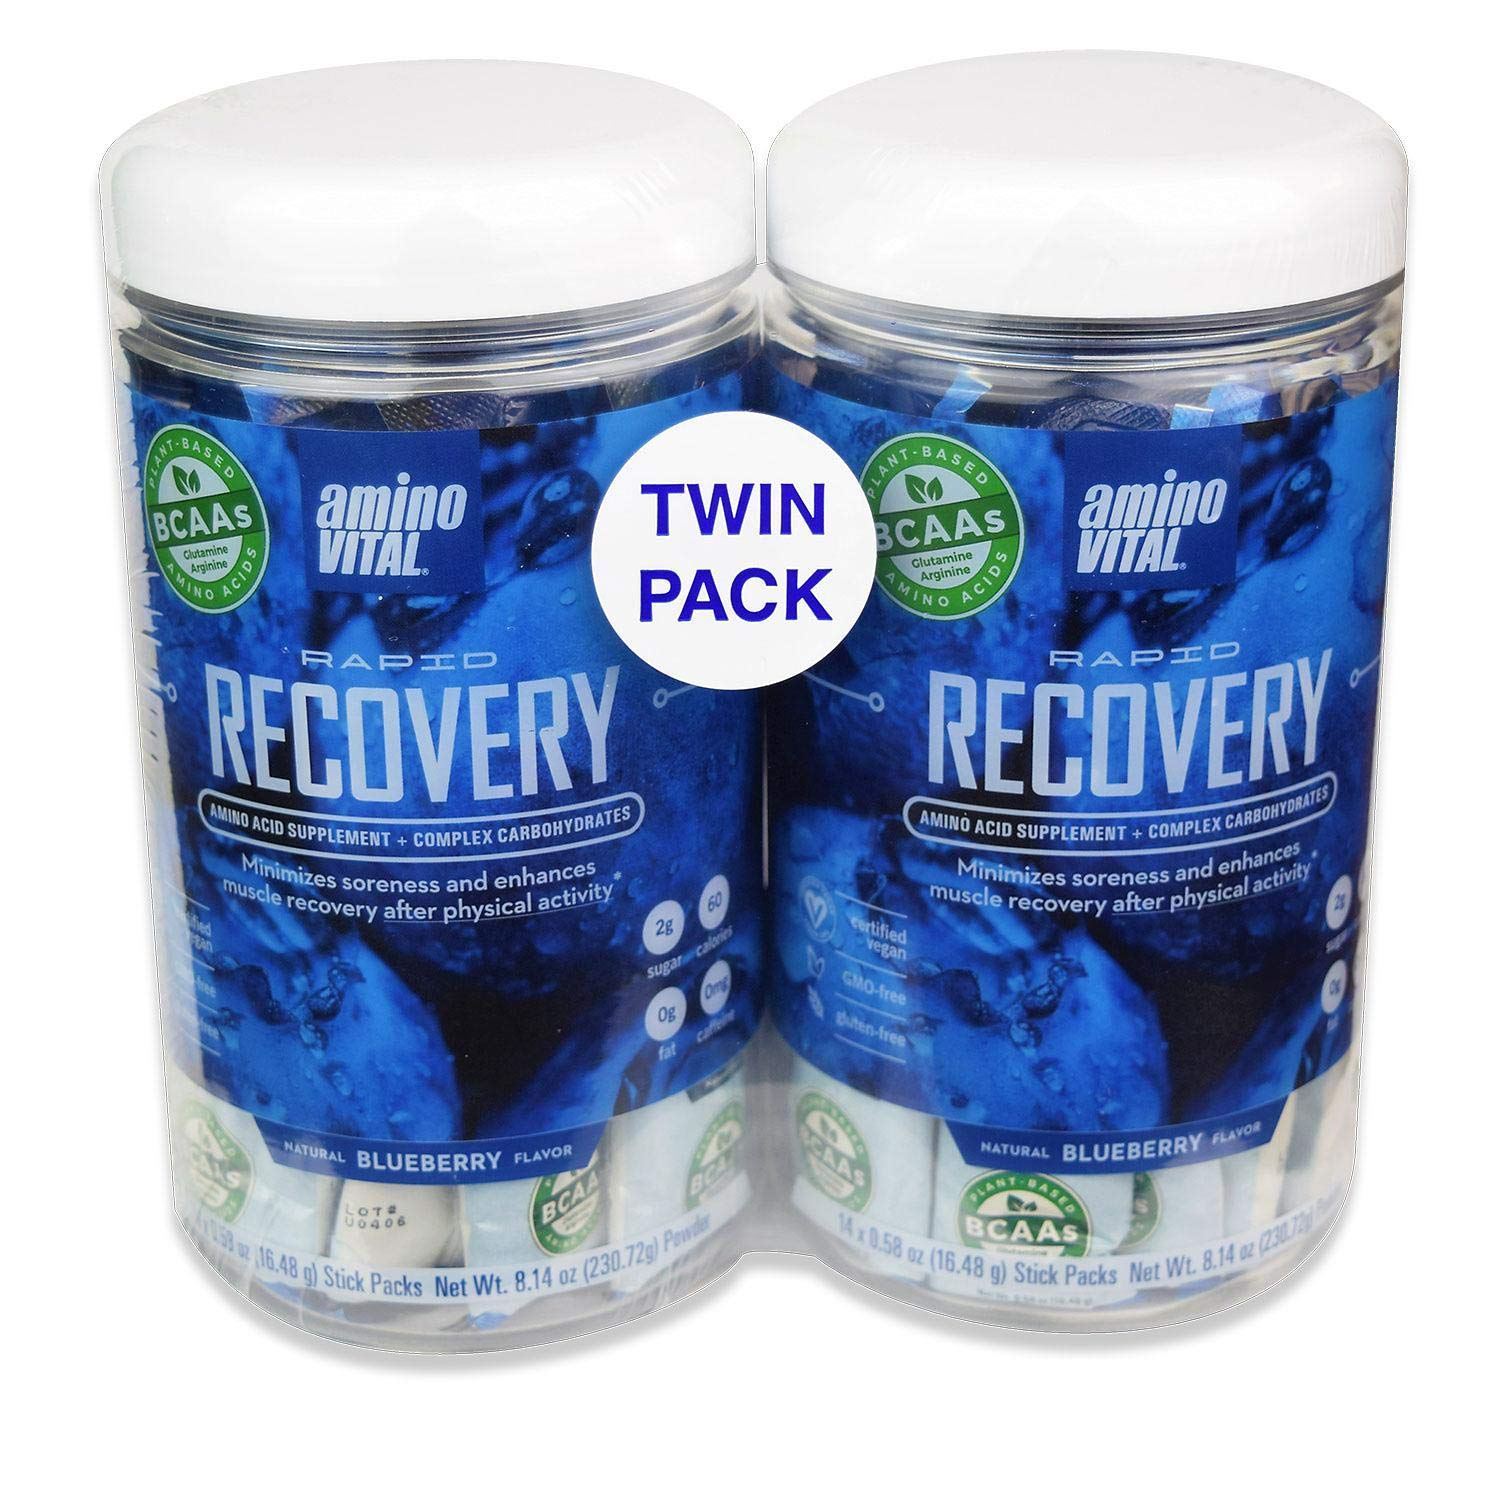 Amino Vital Rapid Recovery Twin Pack, Natural Blueberry Powdered Single-Serving Drink Mix 28 pk. (Pack of 4) A1